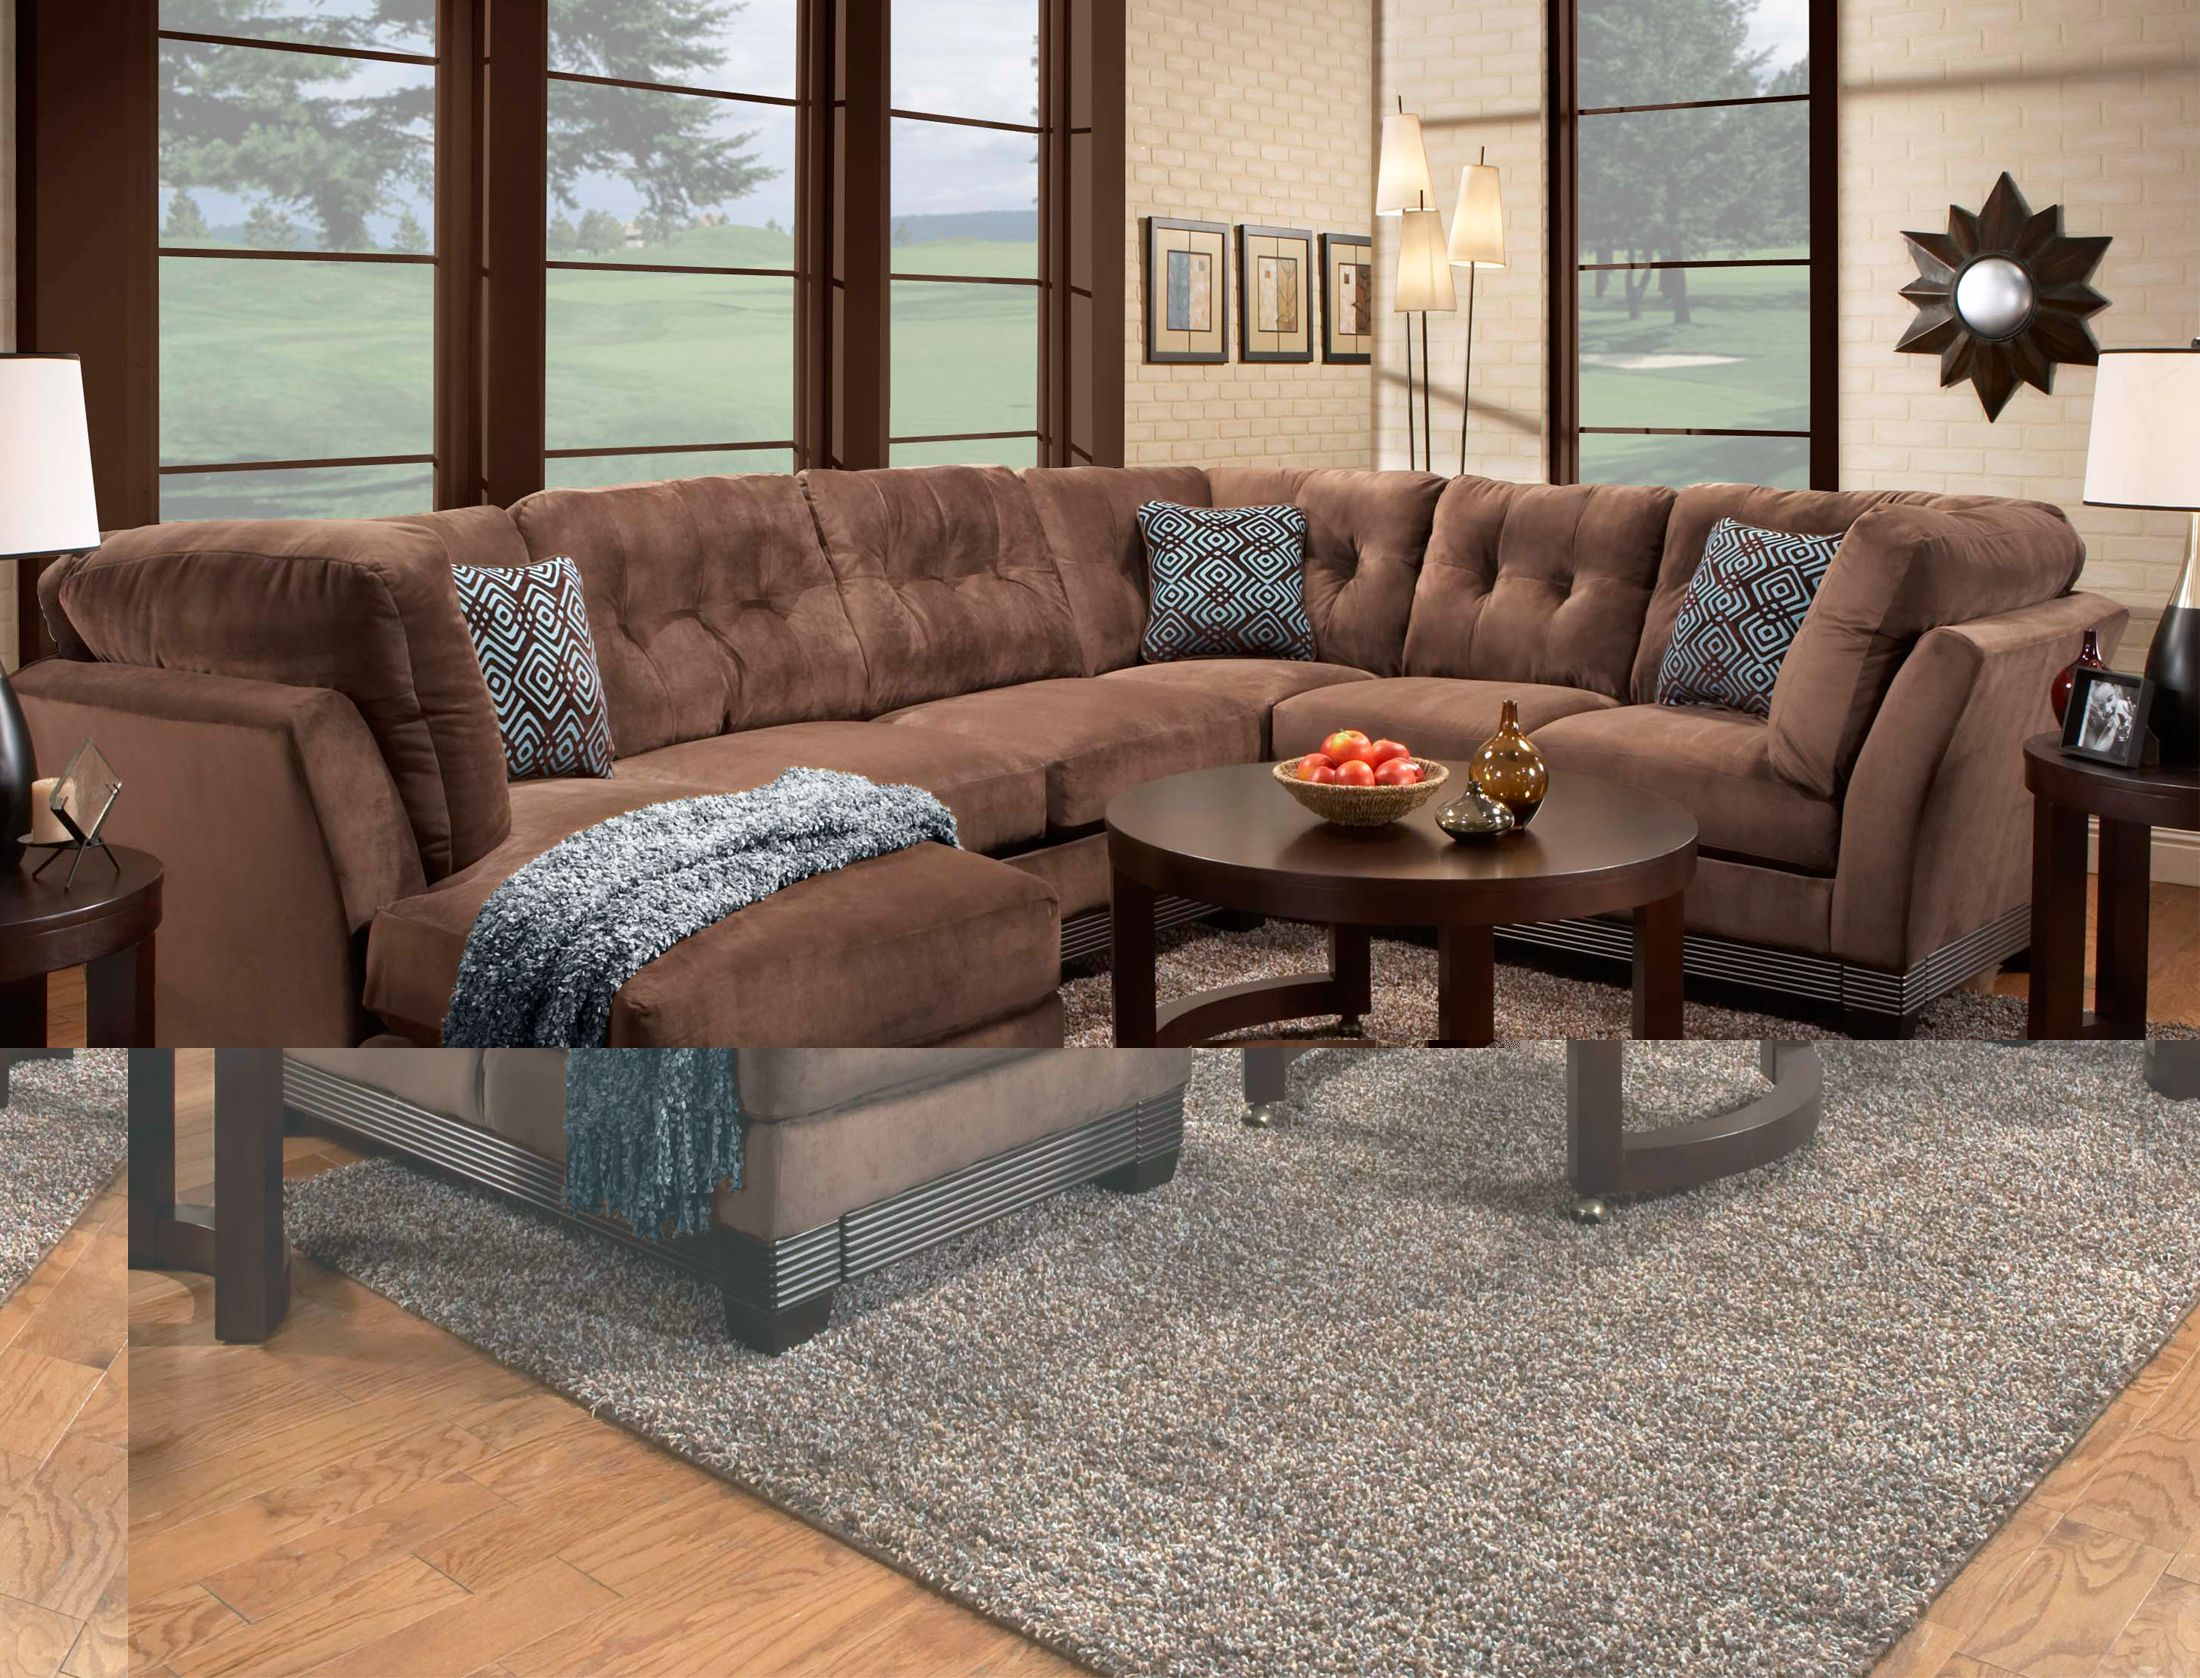 Jeromes eli sofa sectional plain good shizzle pinterest furniture wrap around couch with round table wrap around couch for small living room leather sectionals reclining sectional apartment furniture as well geotapseo Gallery